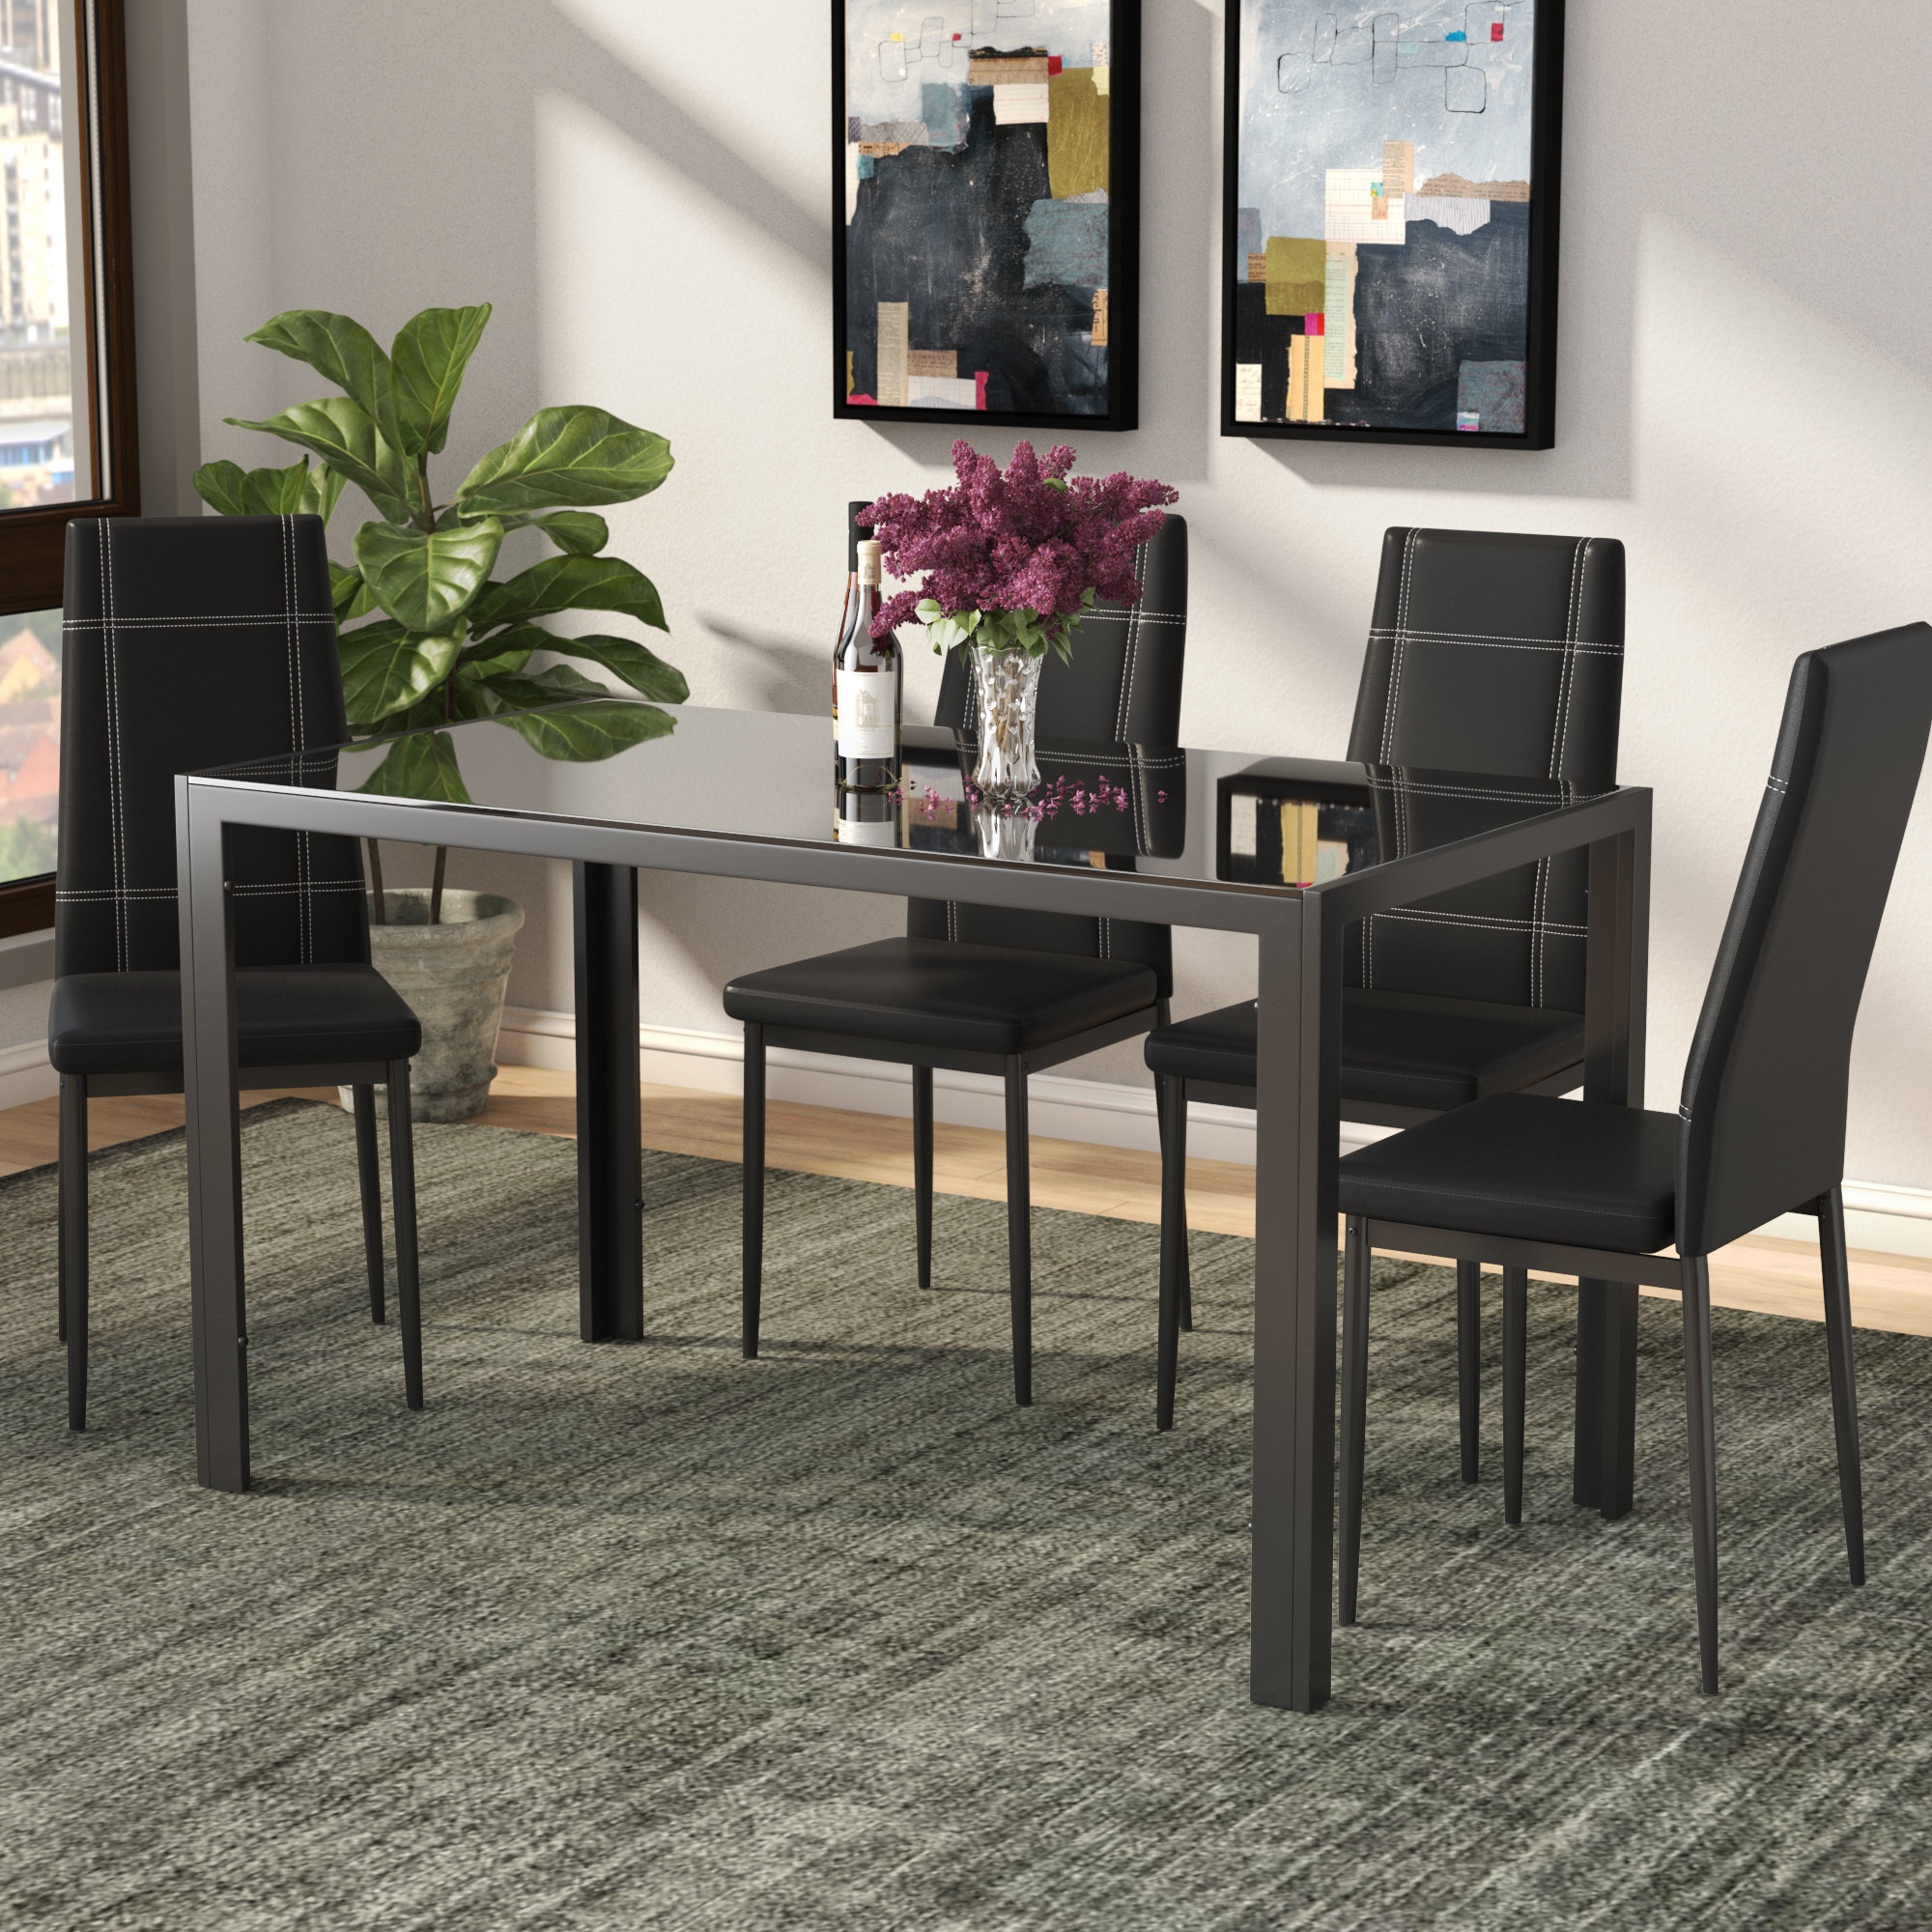 Trendy Ebern Designs Maynard 5 Piece Dining Set & Reviews (#12 of 20)